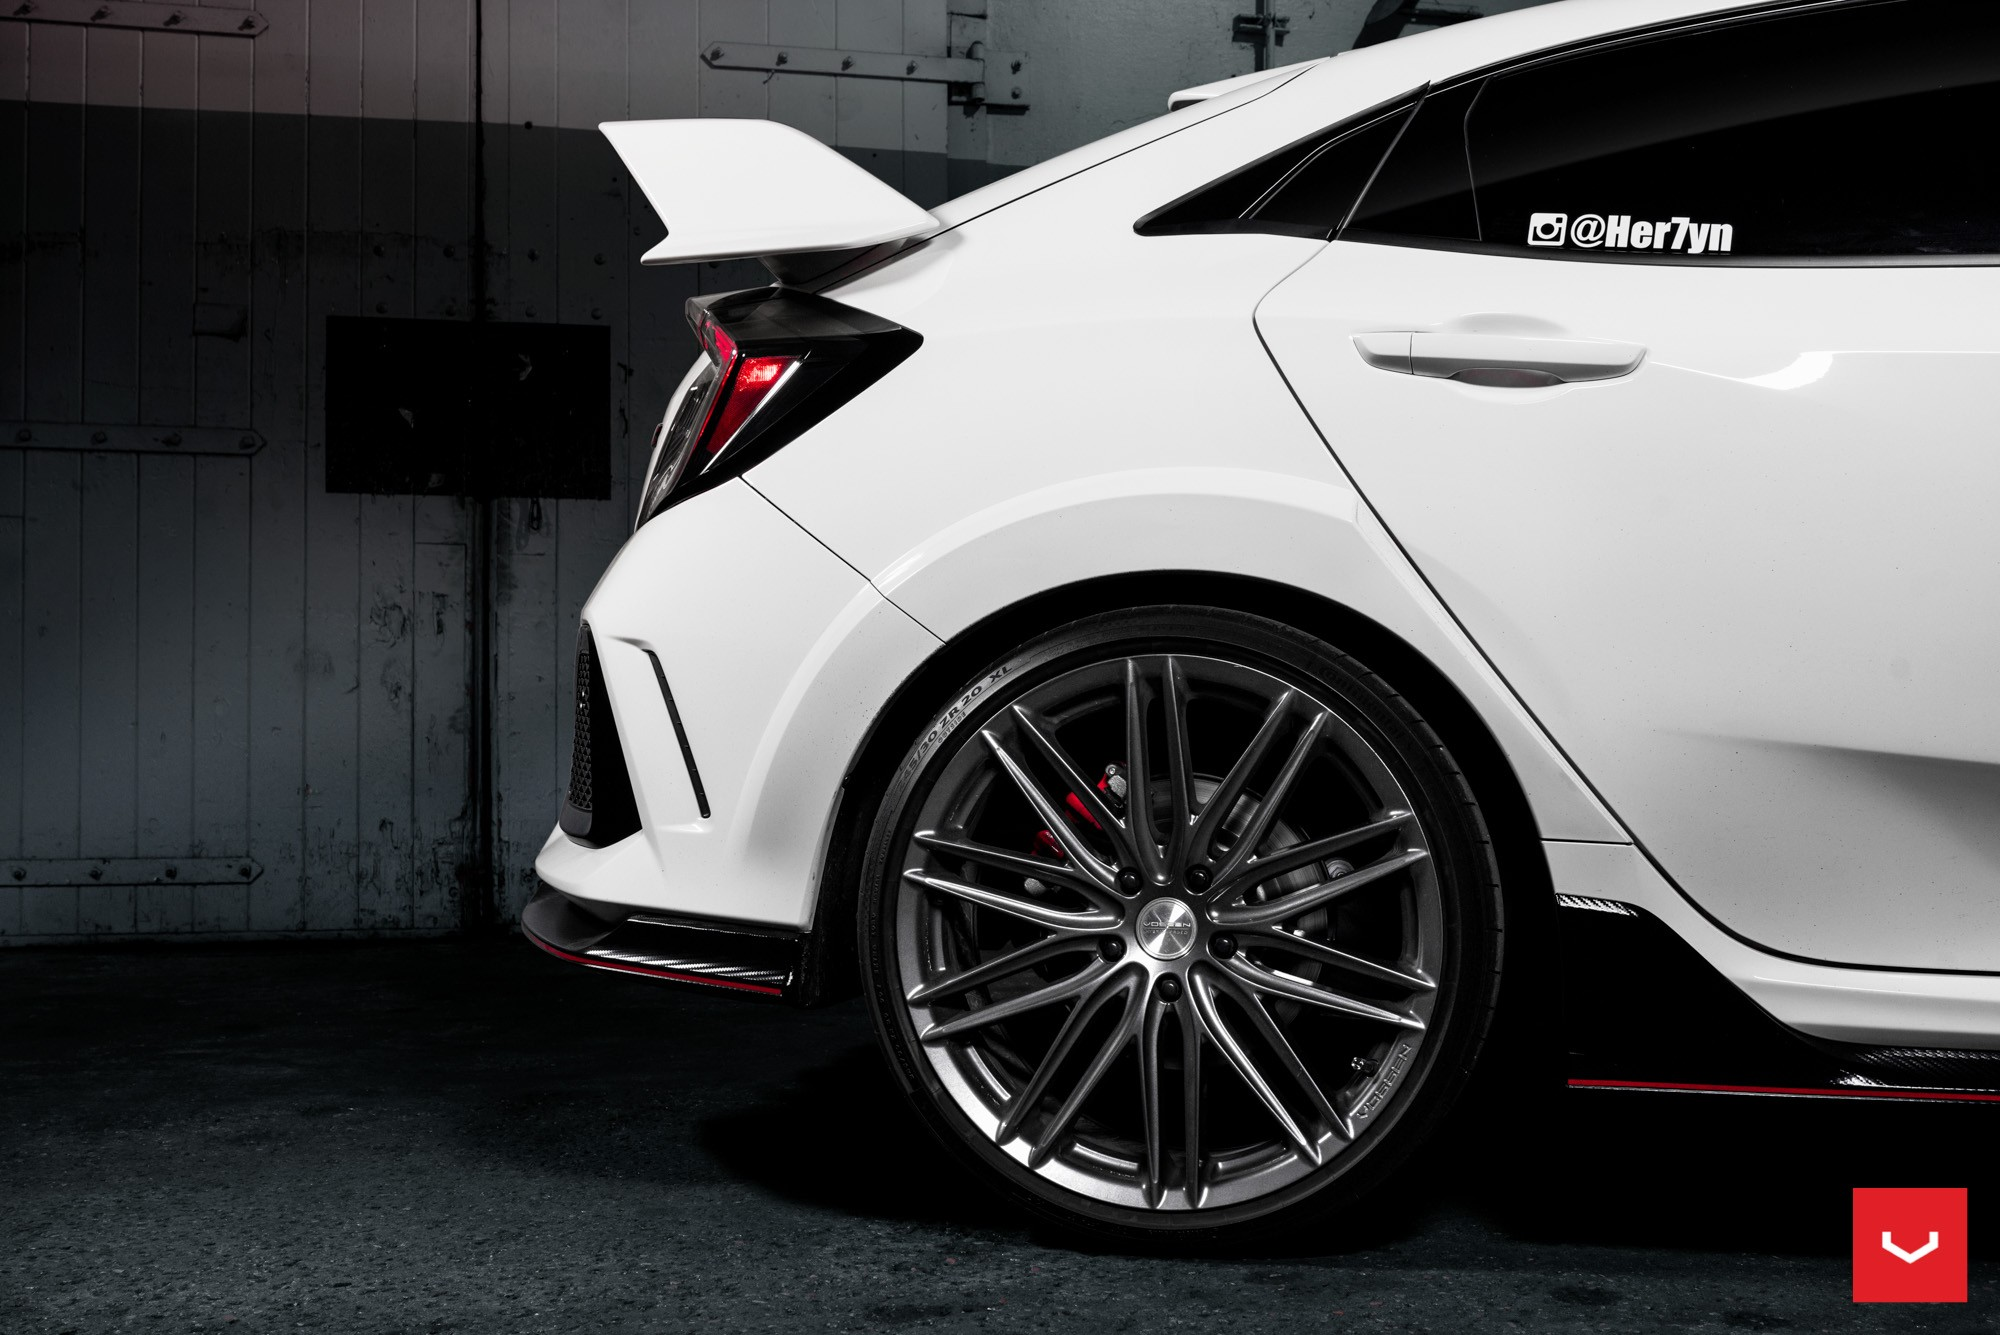 Novo Honda Civic Type R >> 2018 Honda Civic Type R Twins Get Vossen Hybrid Forged Wheels - autoevolution